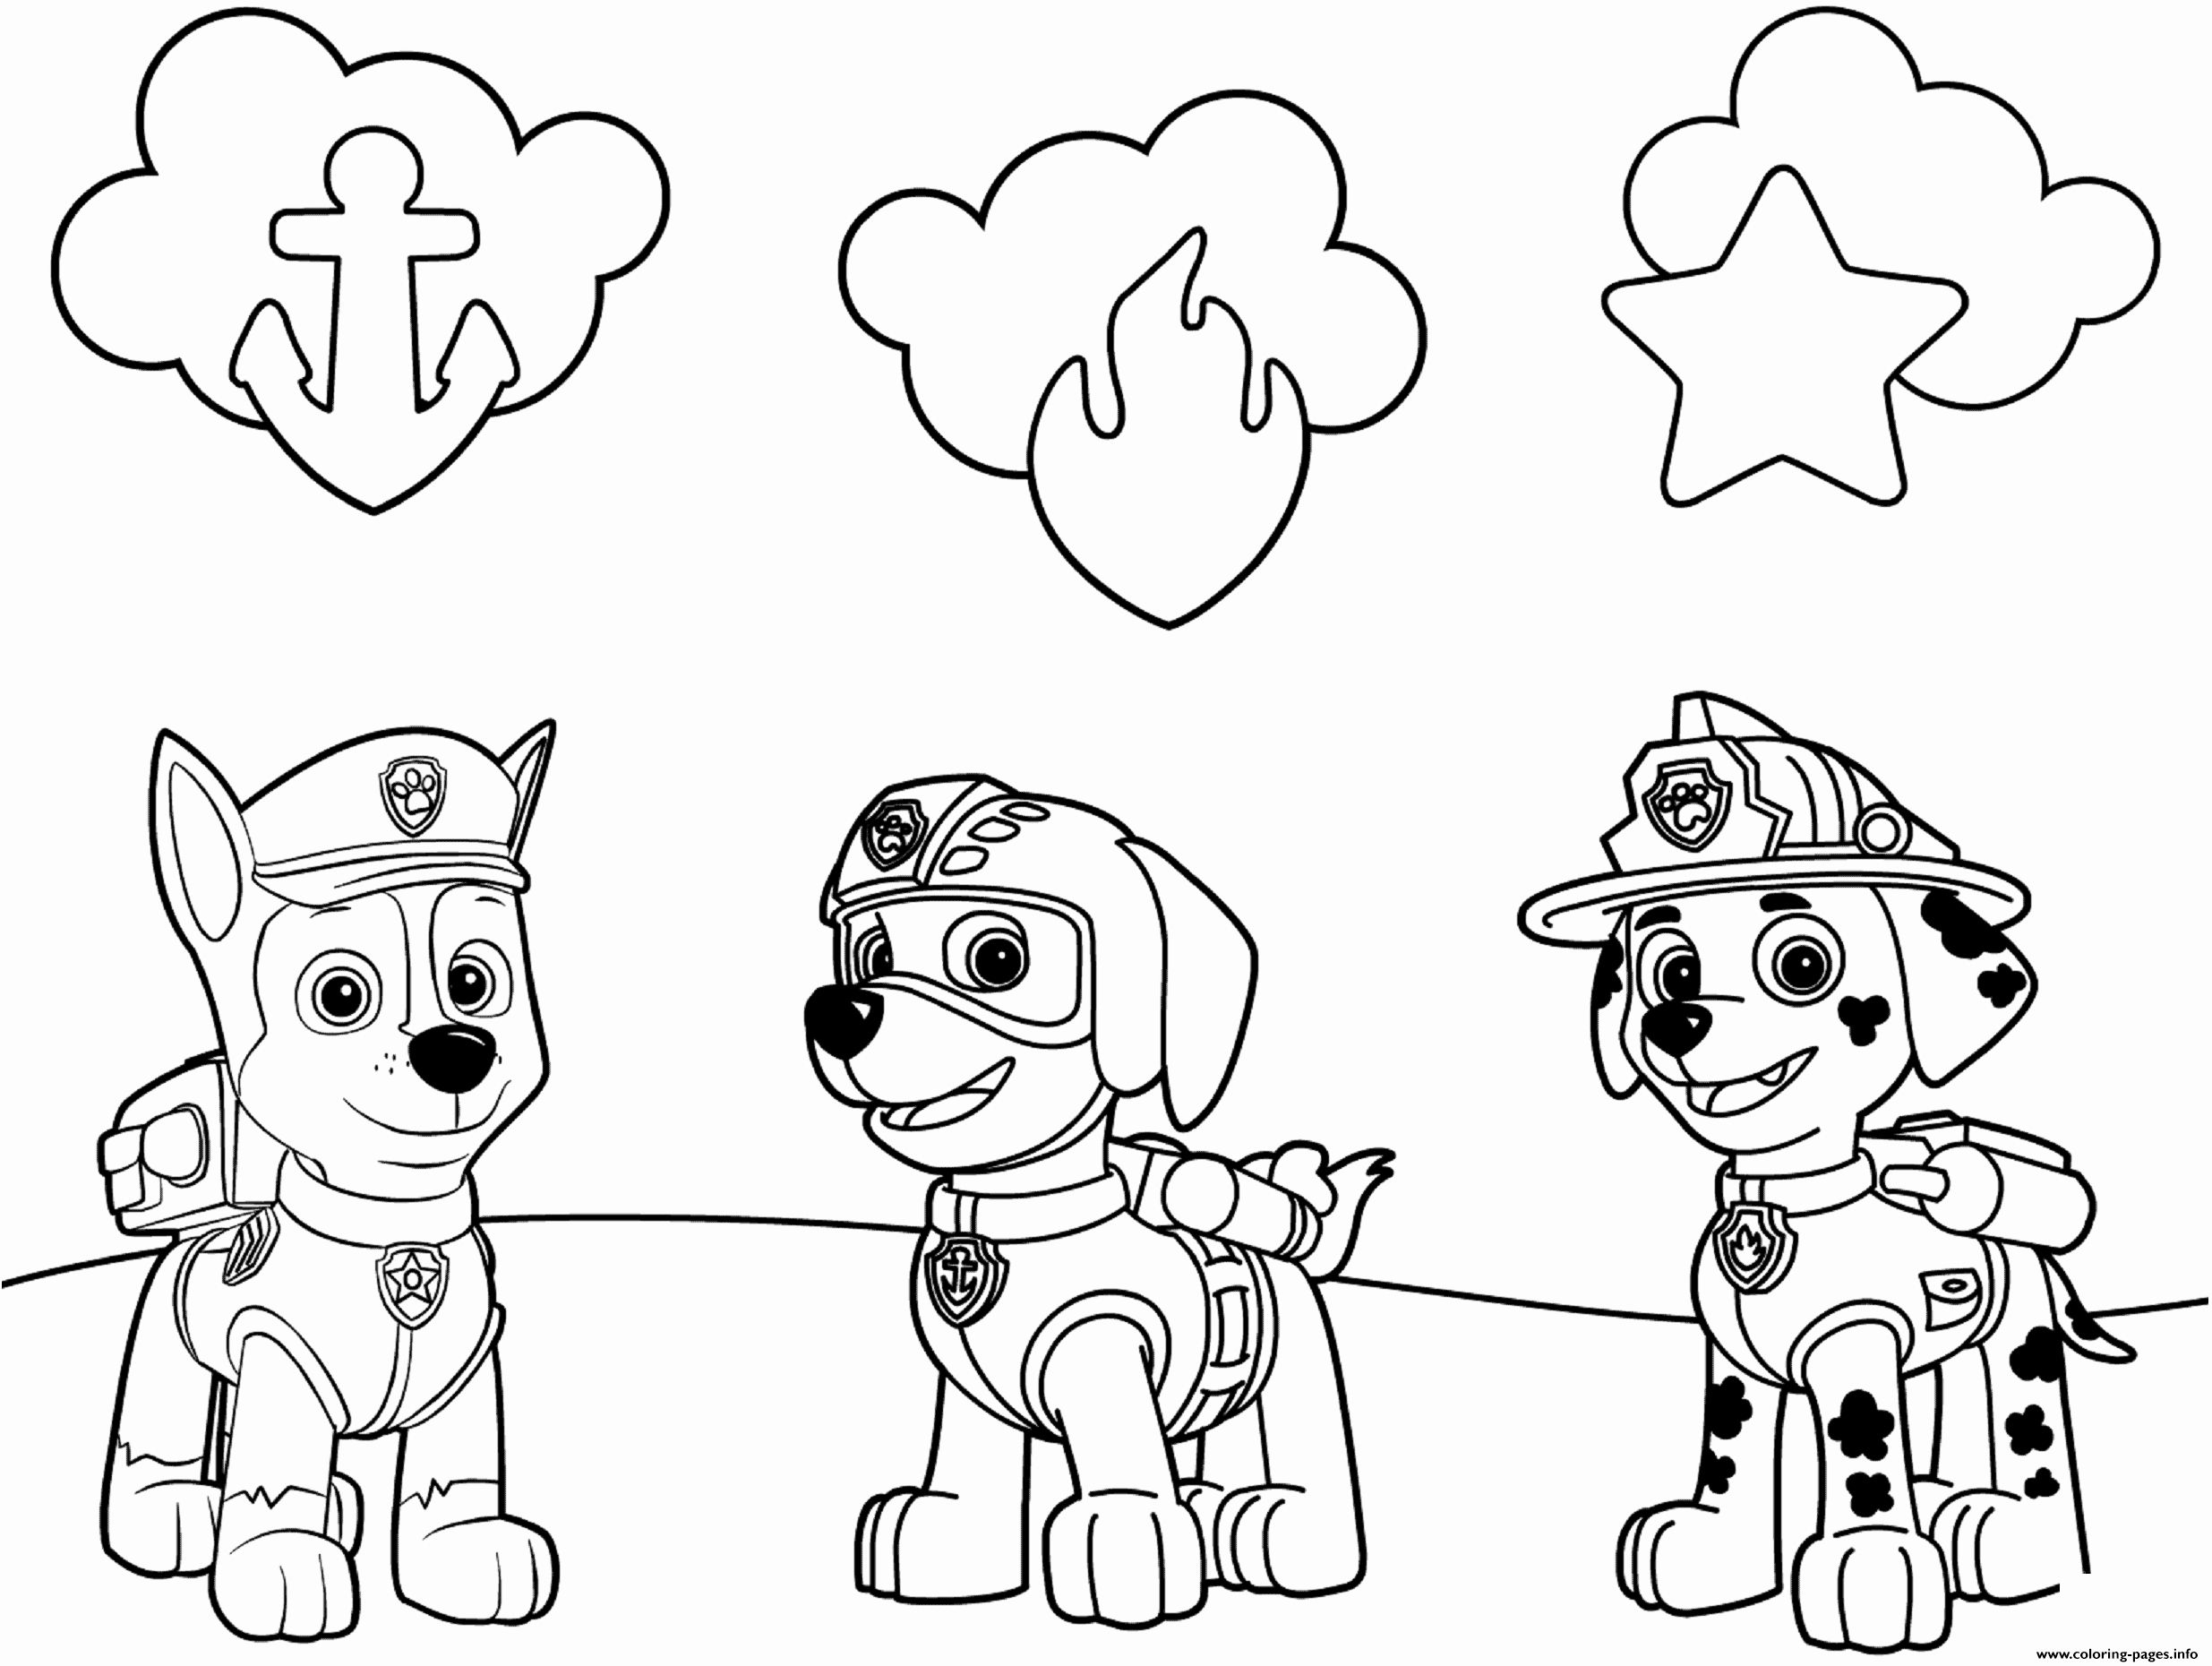 Coloring Rocks Paw Patrol Coloring Pages Paw Patrol Coloring Marshall Paw Patrol